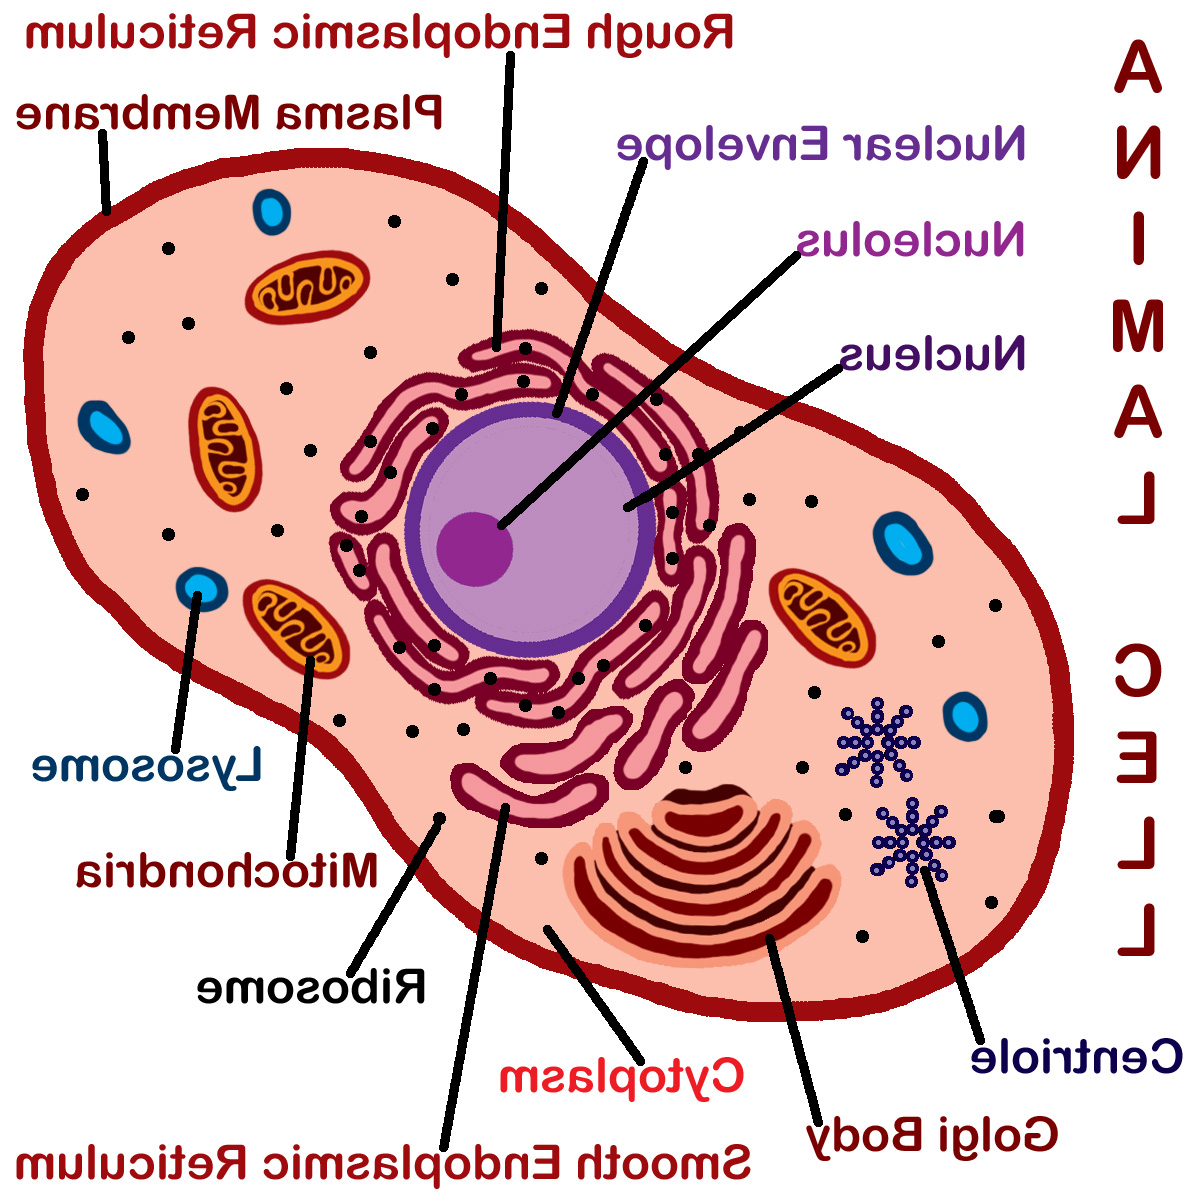 Animal cell drawing at getdrawings free for personal use 1200x1200 animal cell drawing with labels animal cell diagrams to print ccuart Images